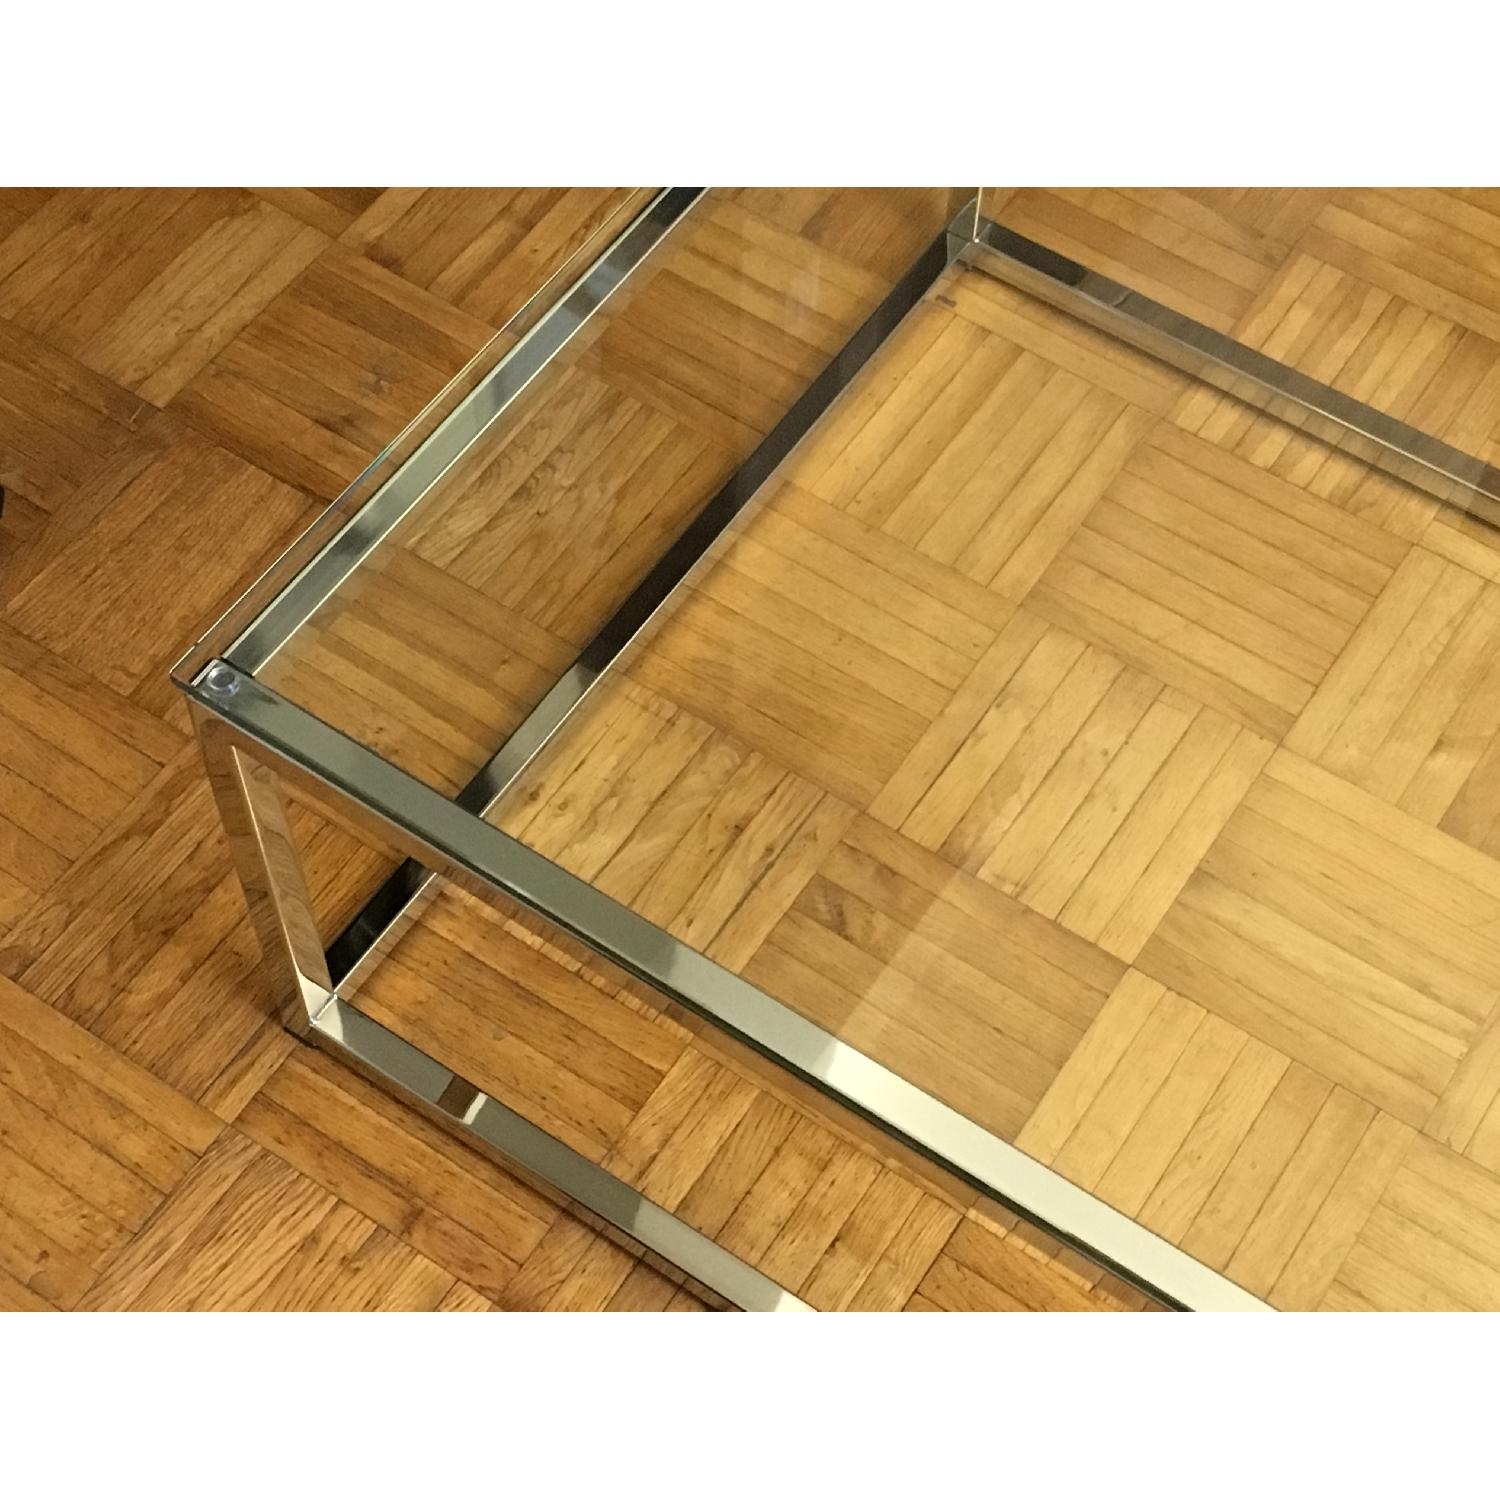 CB2 Smart Glass Top Coffee Table - image-3